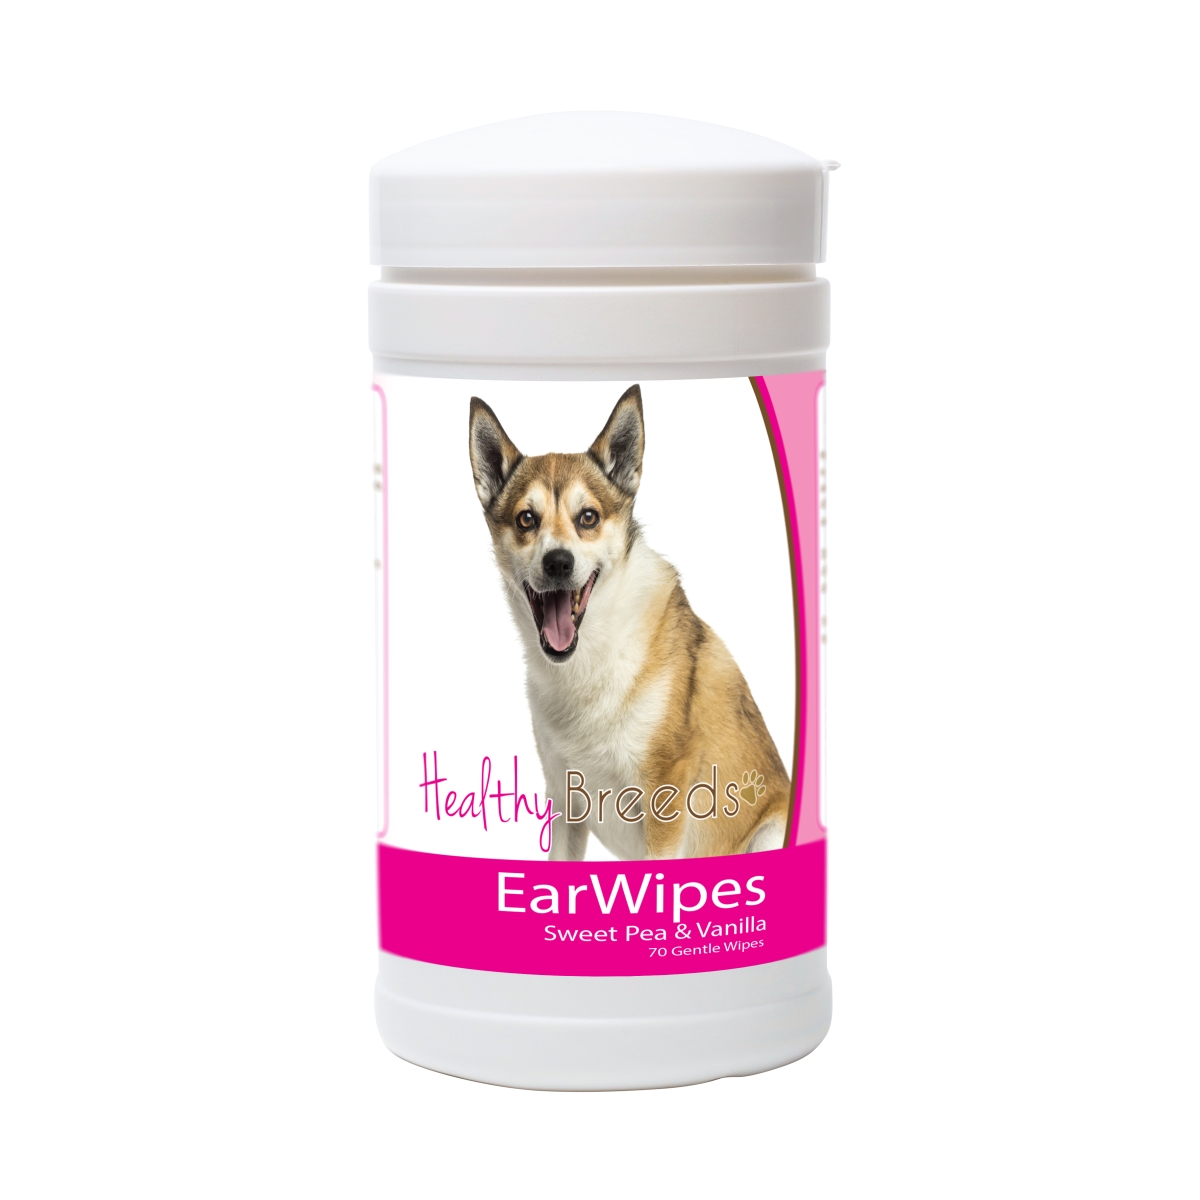 Healthy Breeds 840235174851 Norwegian Lundehund Ear Wipes - 70 Count